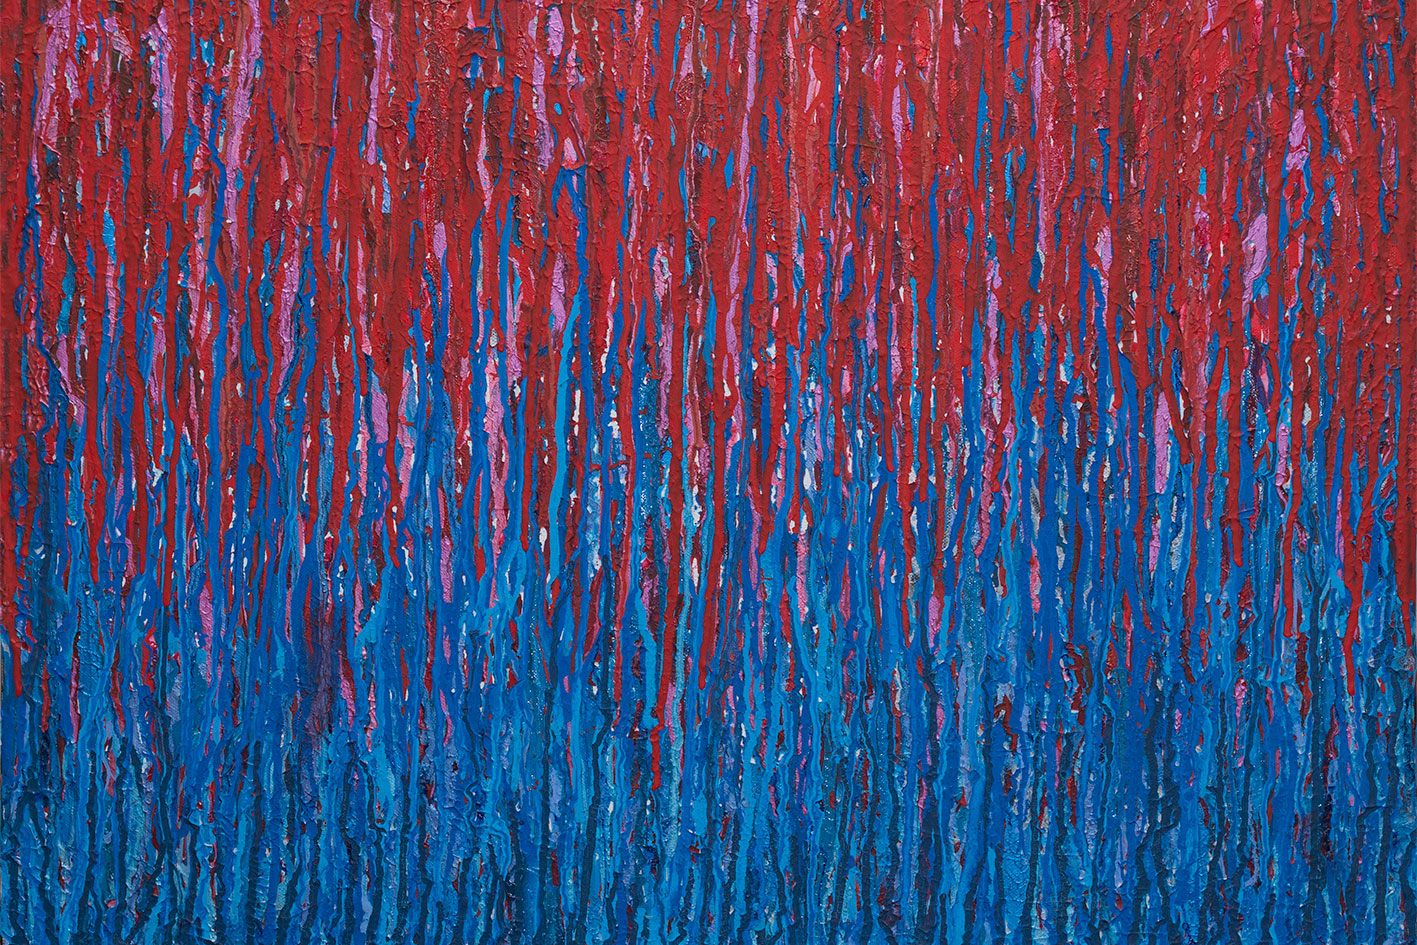 Paint + Ink on textured canvas Painting © Roger Smith 2015